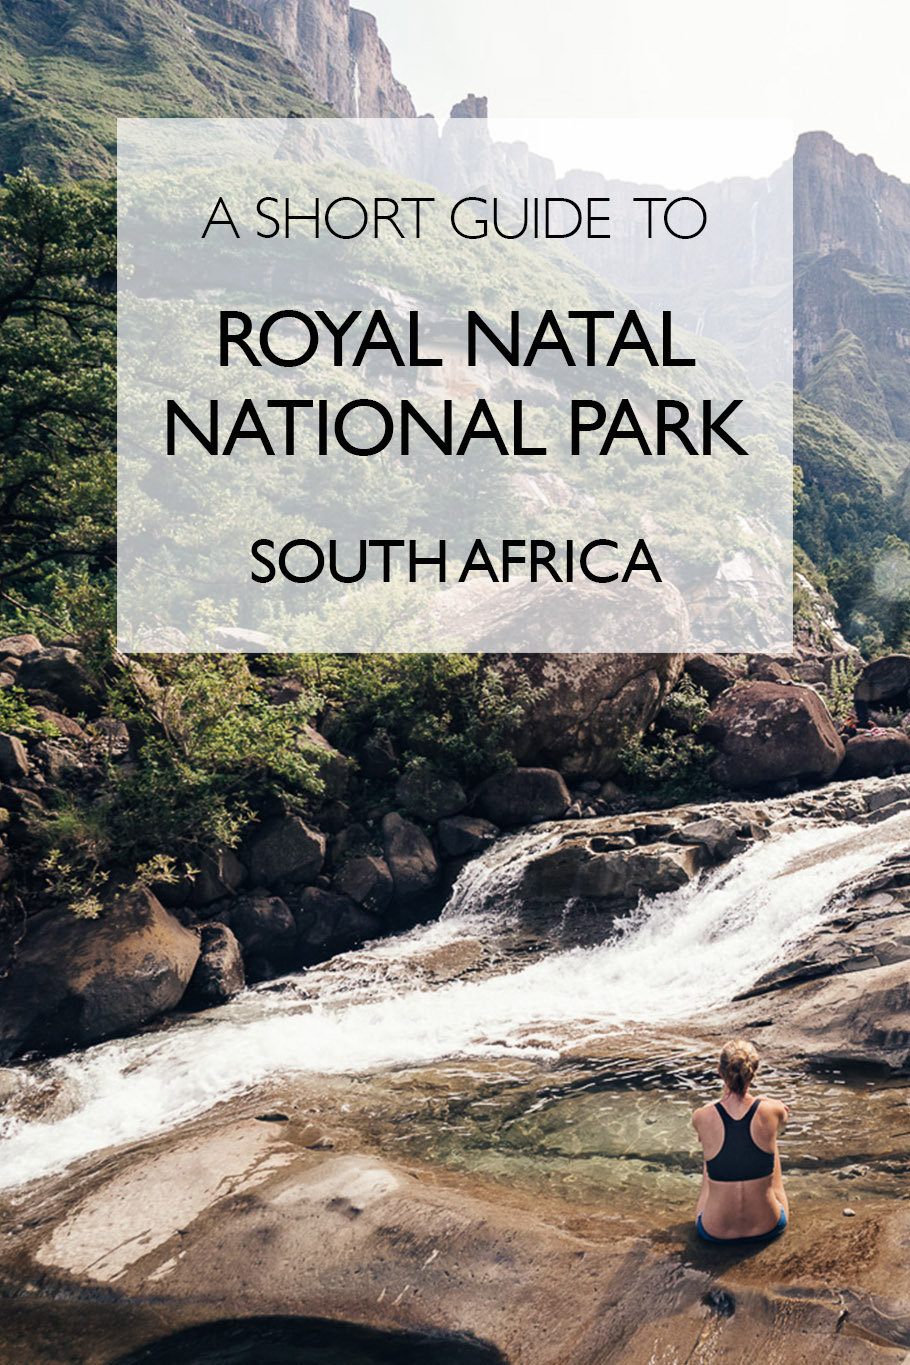 A Complete Guide To Royal Natal National Park Including The Best Hiking Trails, Accommodation and How To Plan Your Trip To The Northern Drakensberg, South Africa | Tugela Falls | Tugela Gorge Trail | Amphitheatre Hike | Drakensberg Hiking